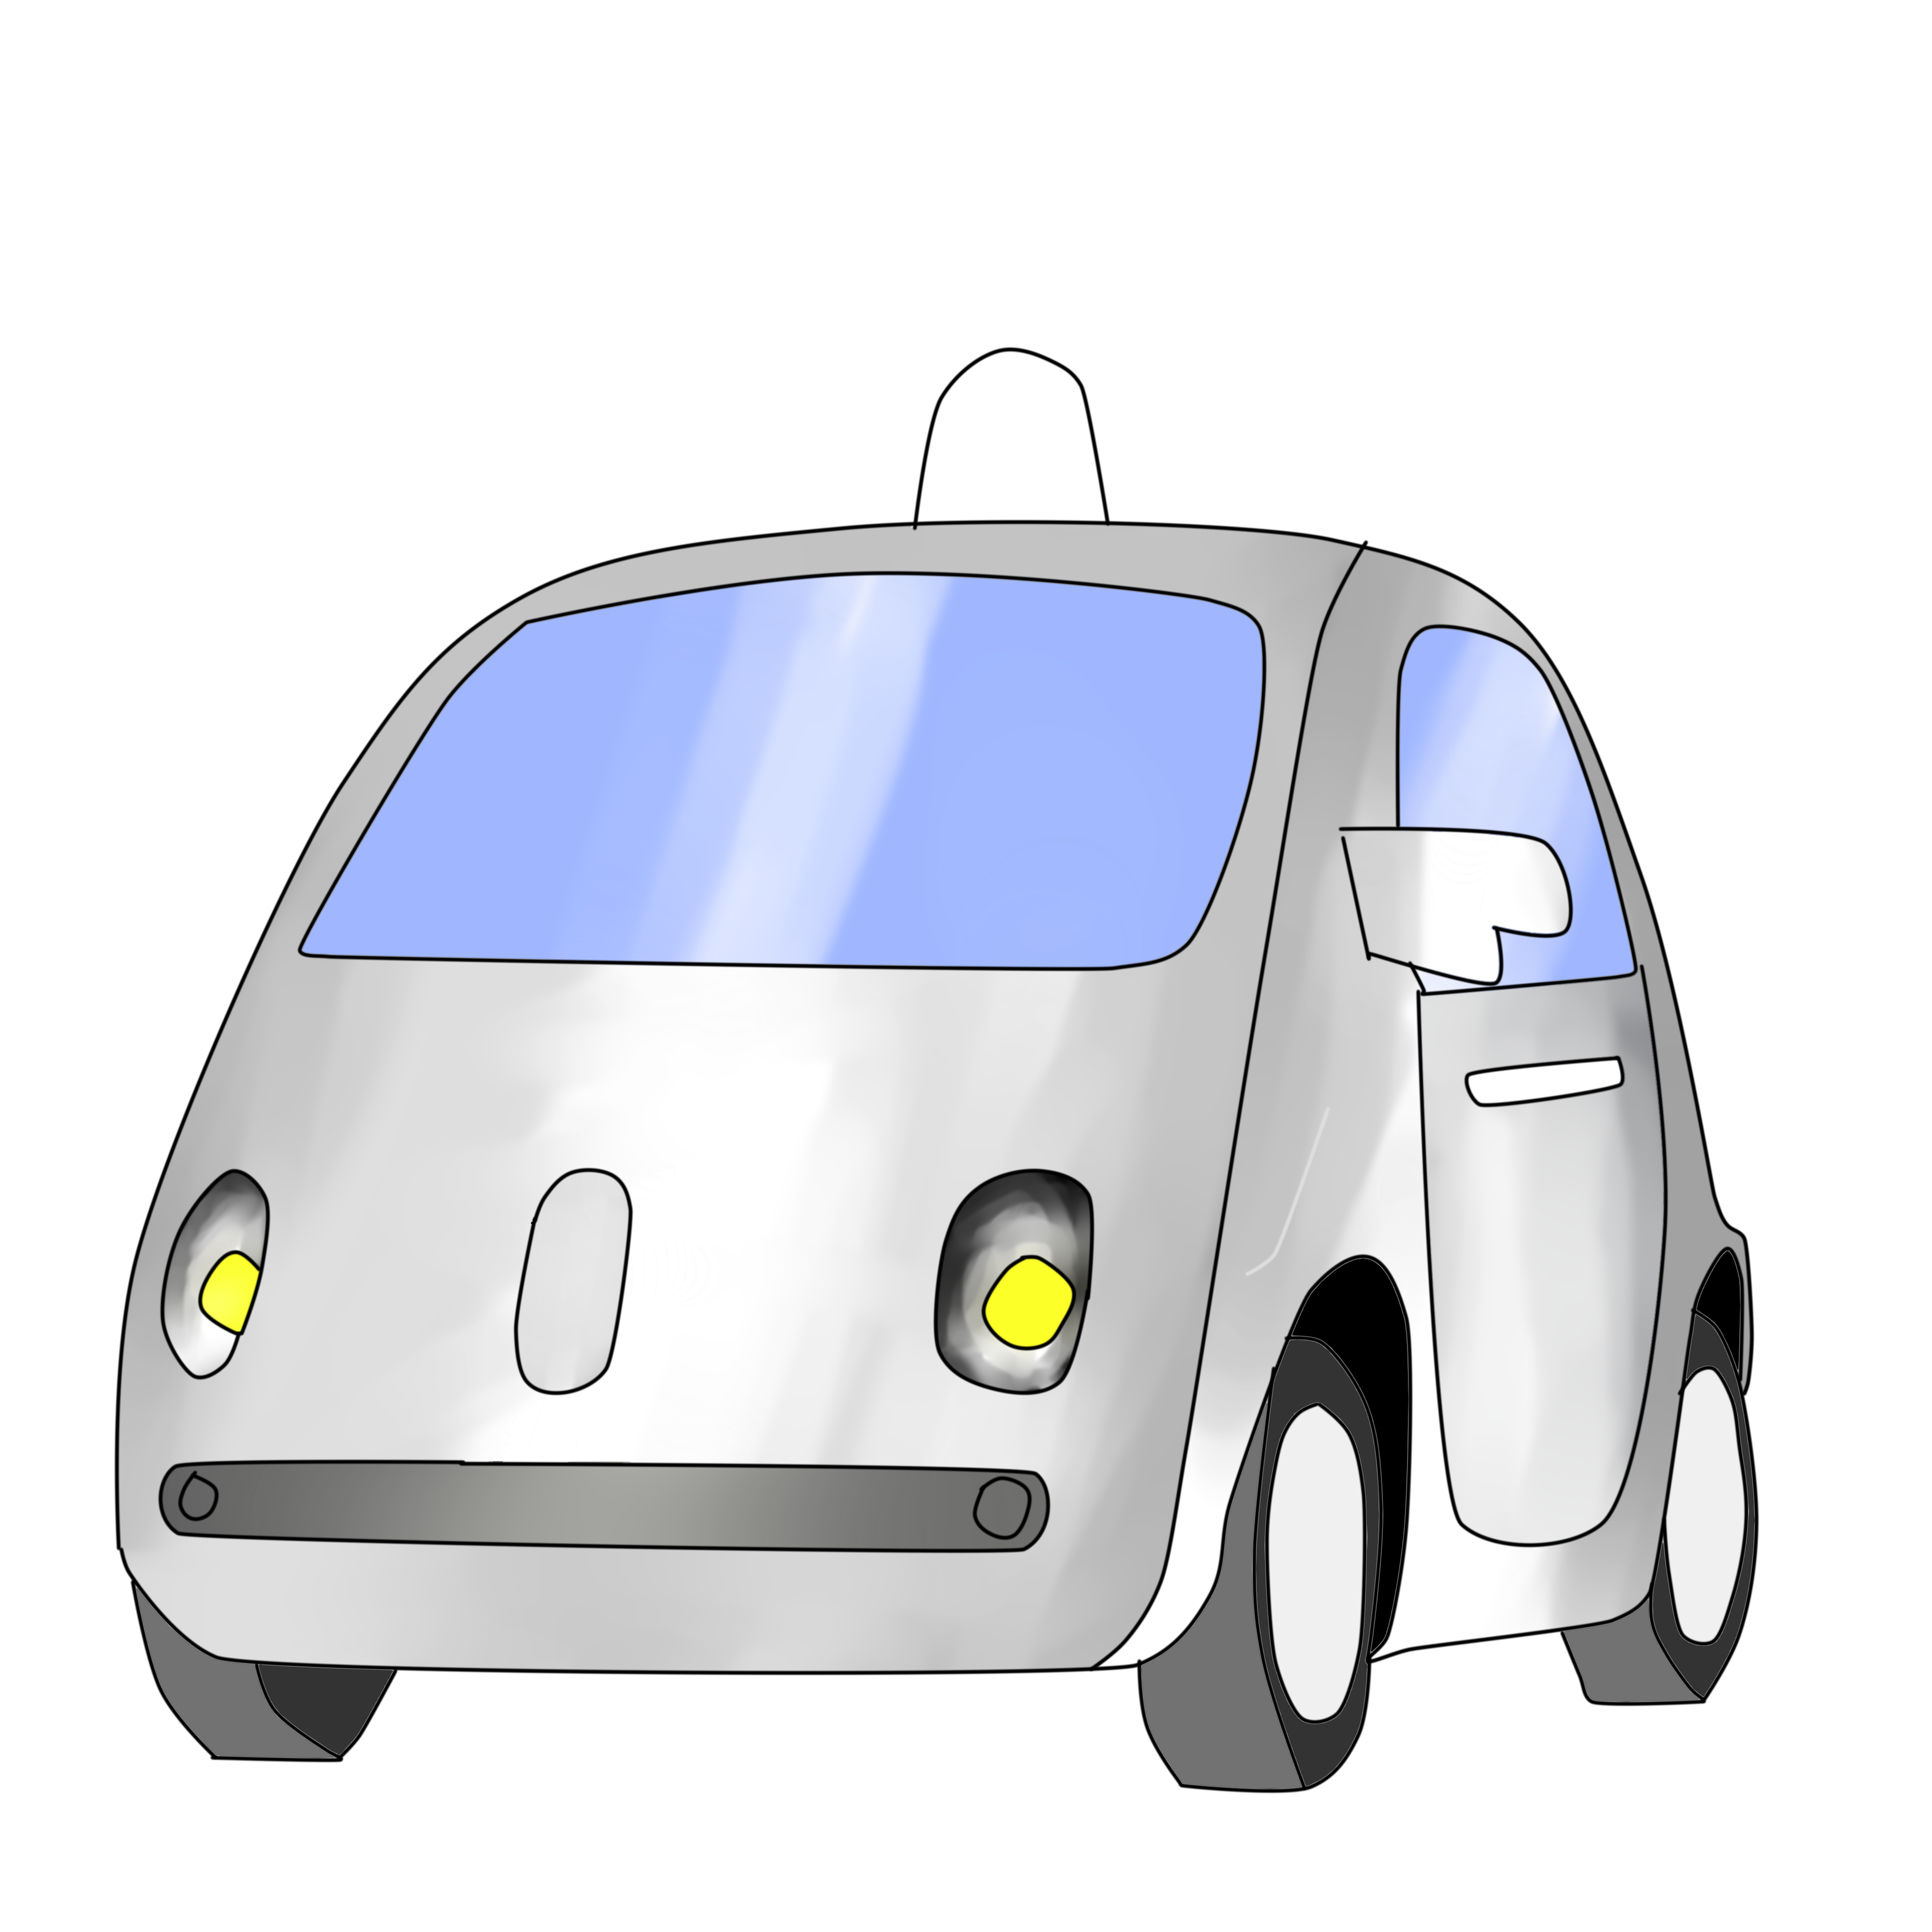 Hovering car clipart image black and white Flashback to the Future – El Estoque image black and white